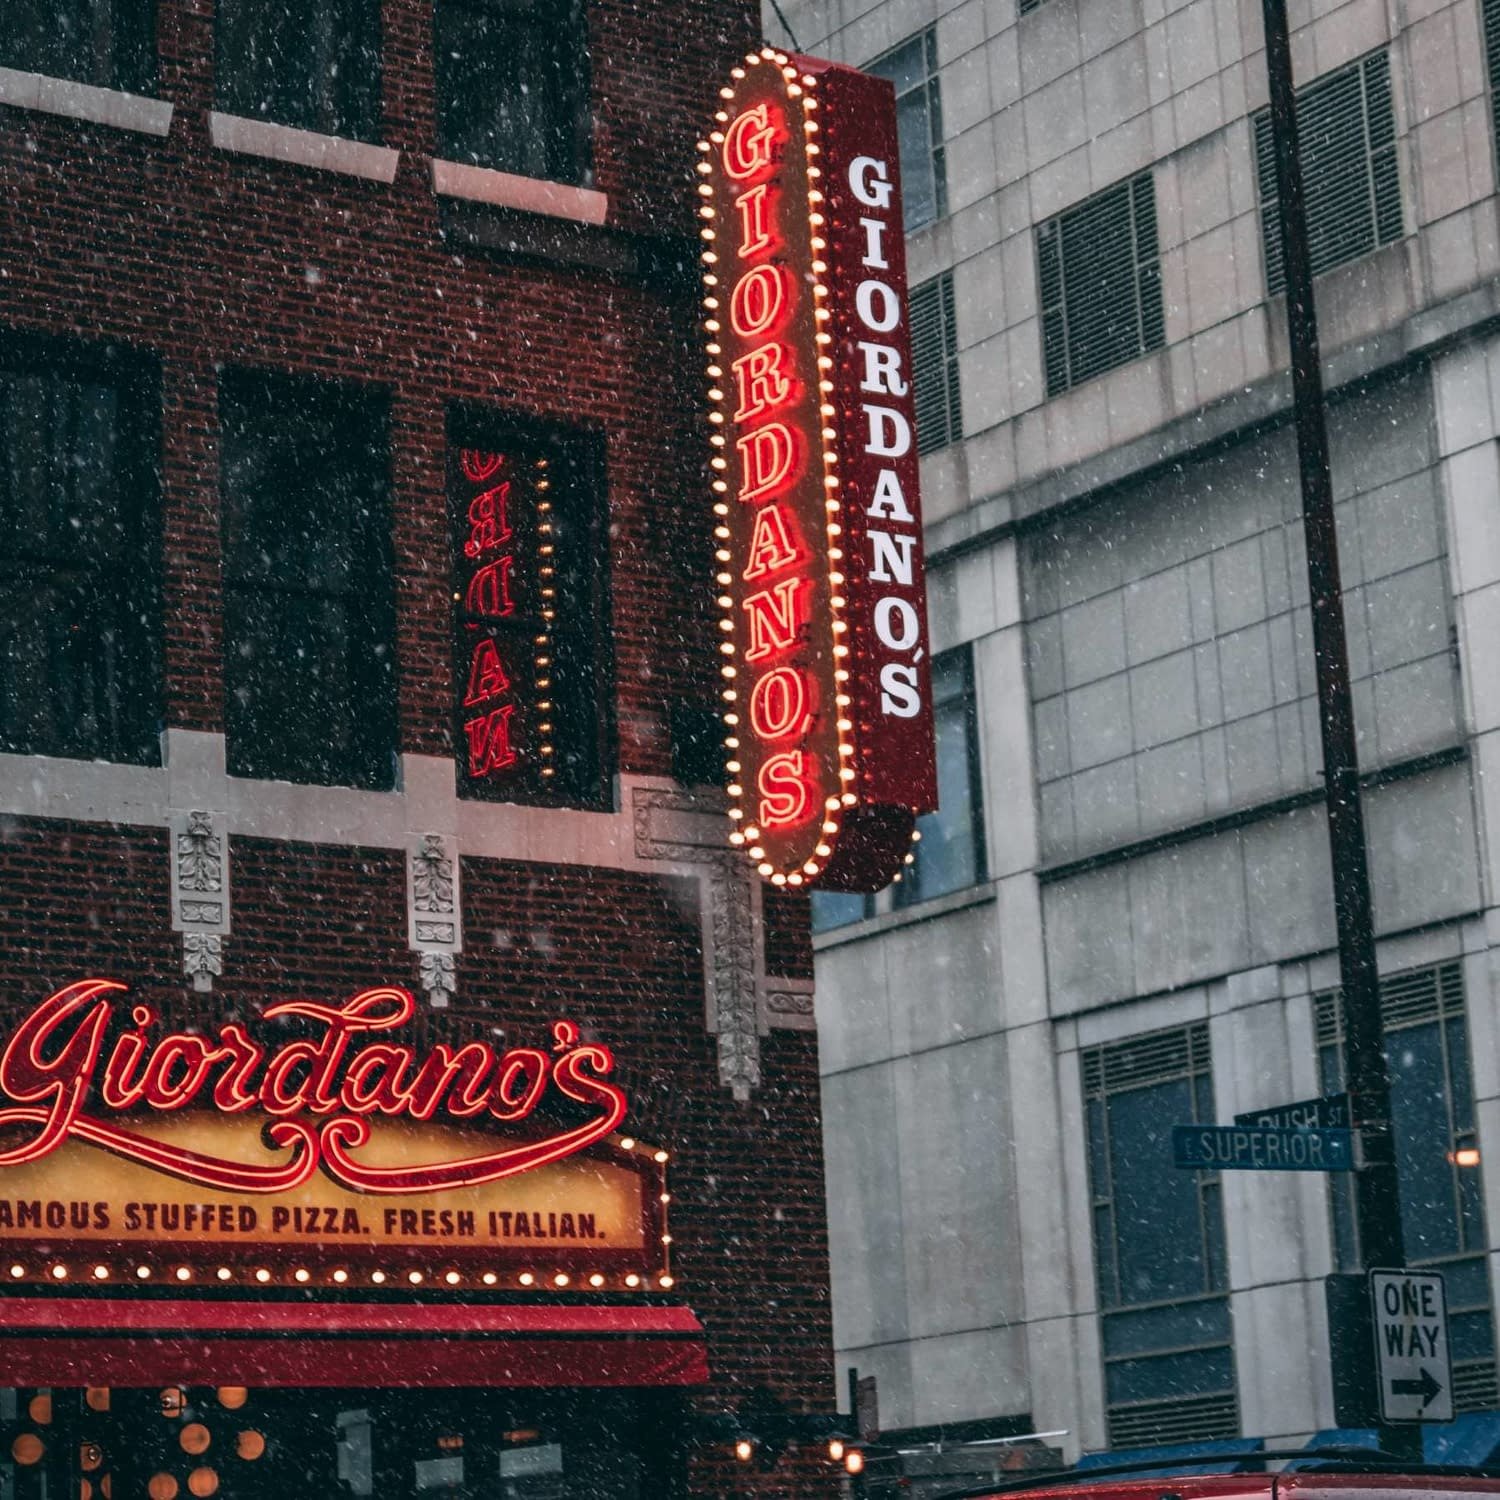 The exterior sign for Giordano's Pizza Place.